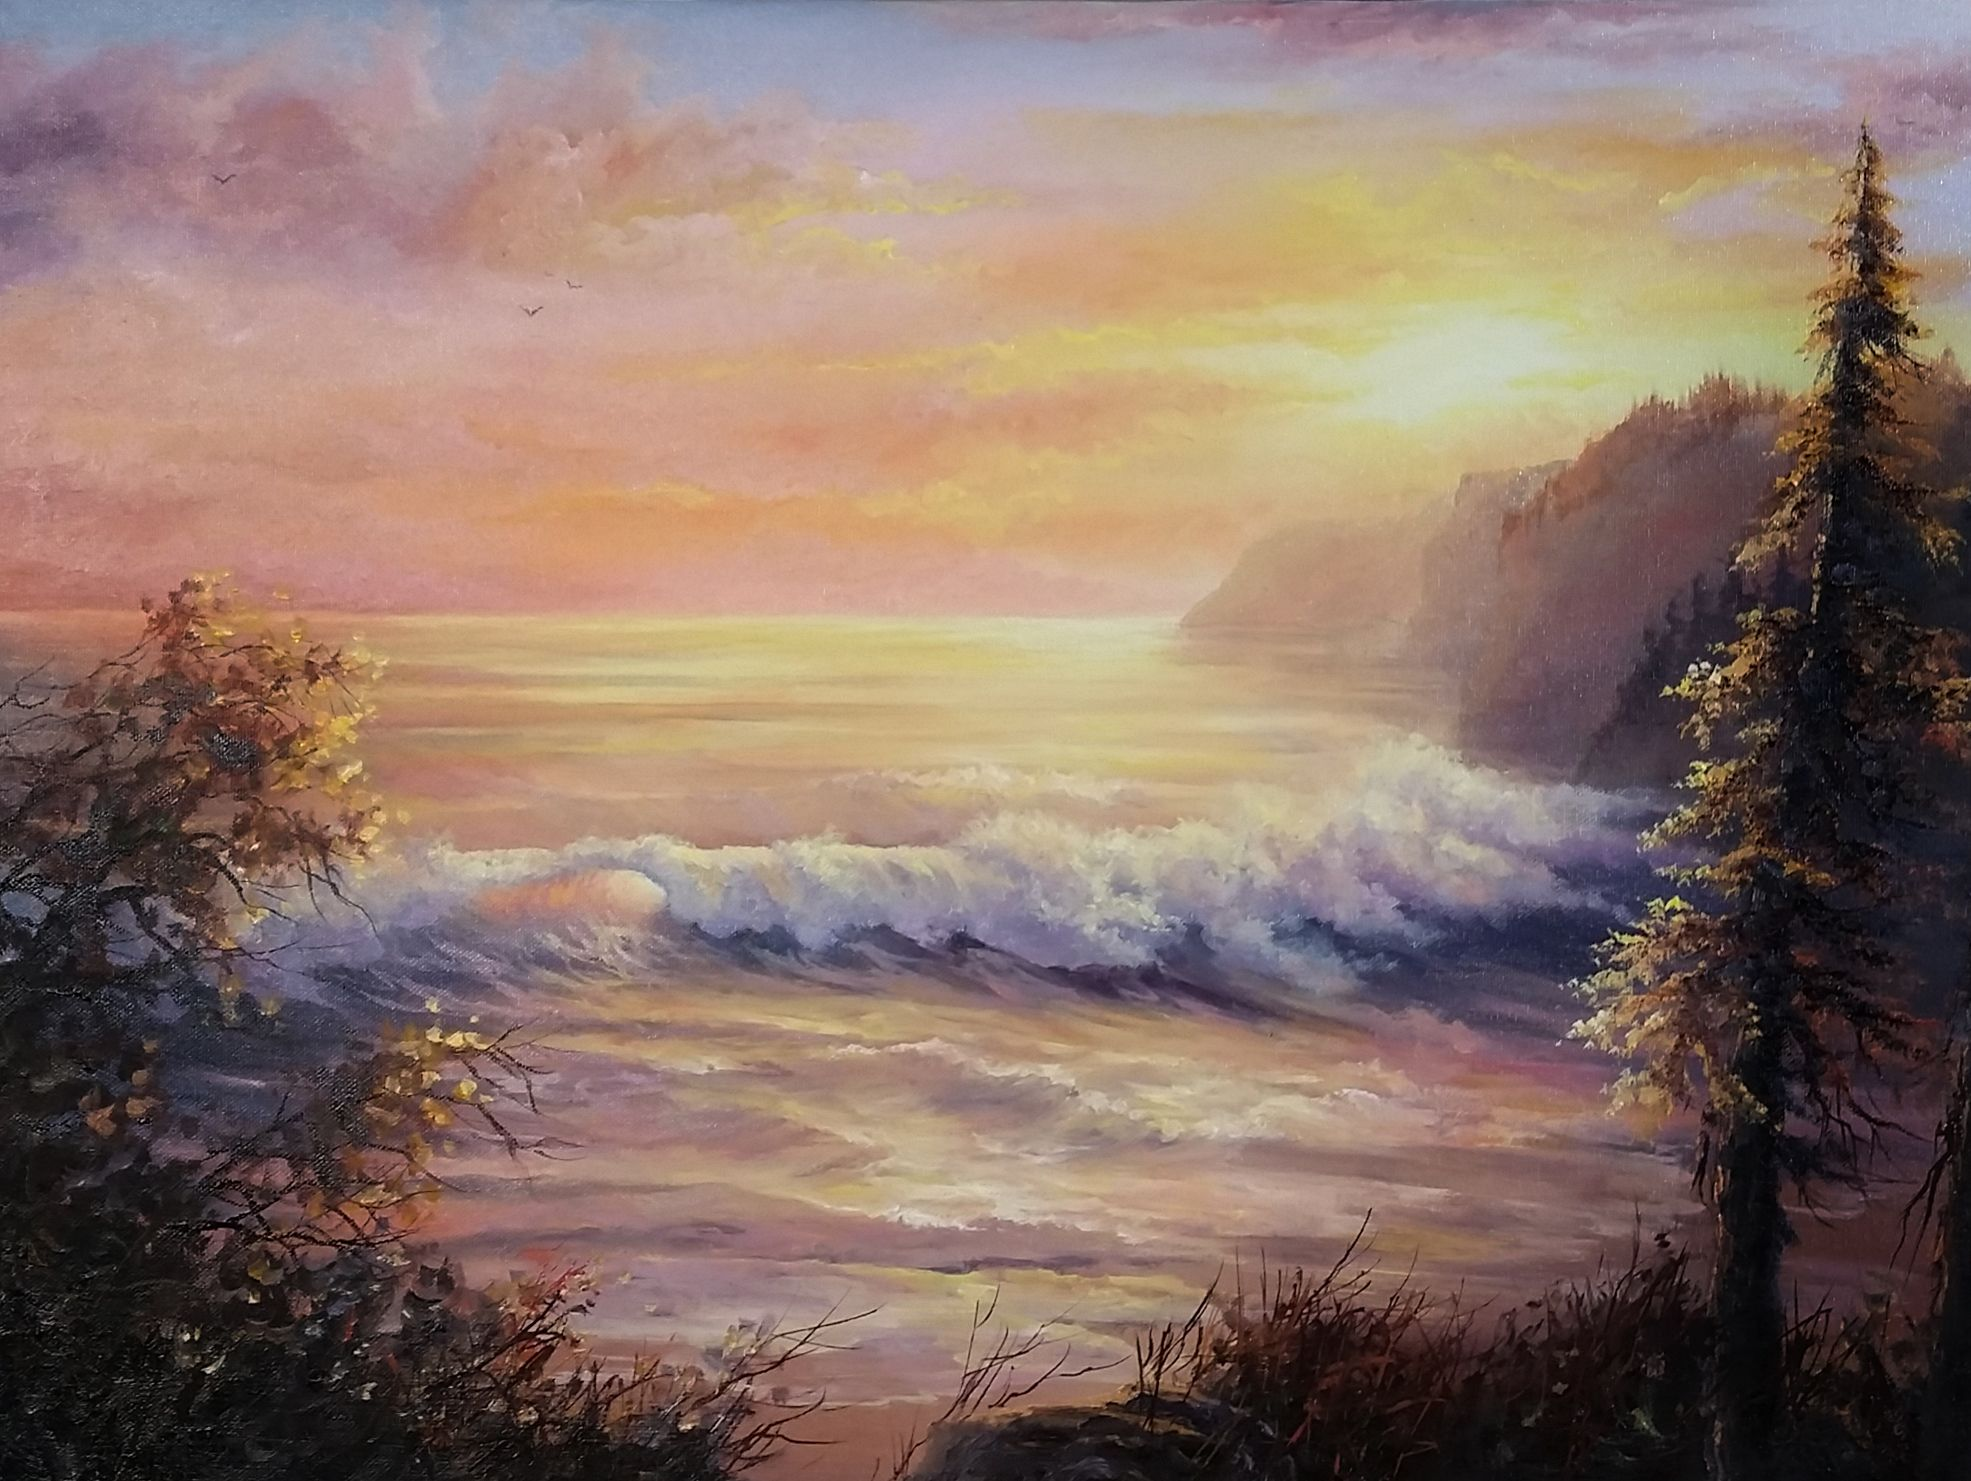 Sunset Seascape Oil Painting By Kevin Hill Watch Short Oil Painting Lessons On Youtube Kevi Kevin Hill Paintings Oil Painting Lessons Oil Painting Landscape